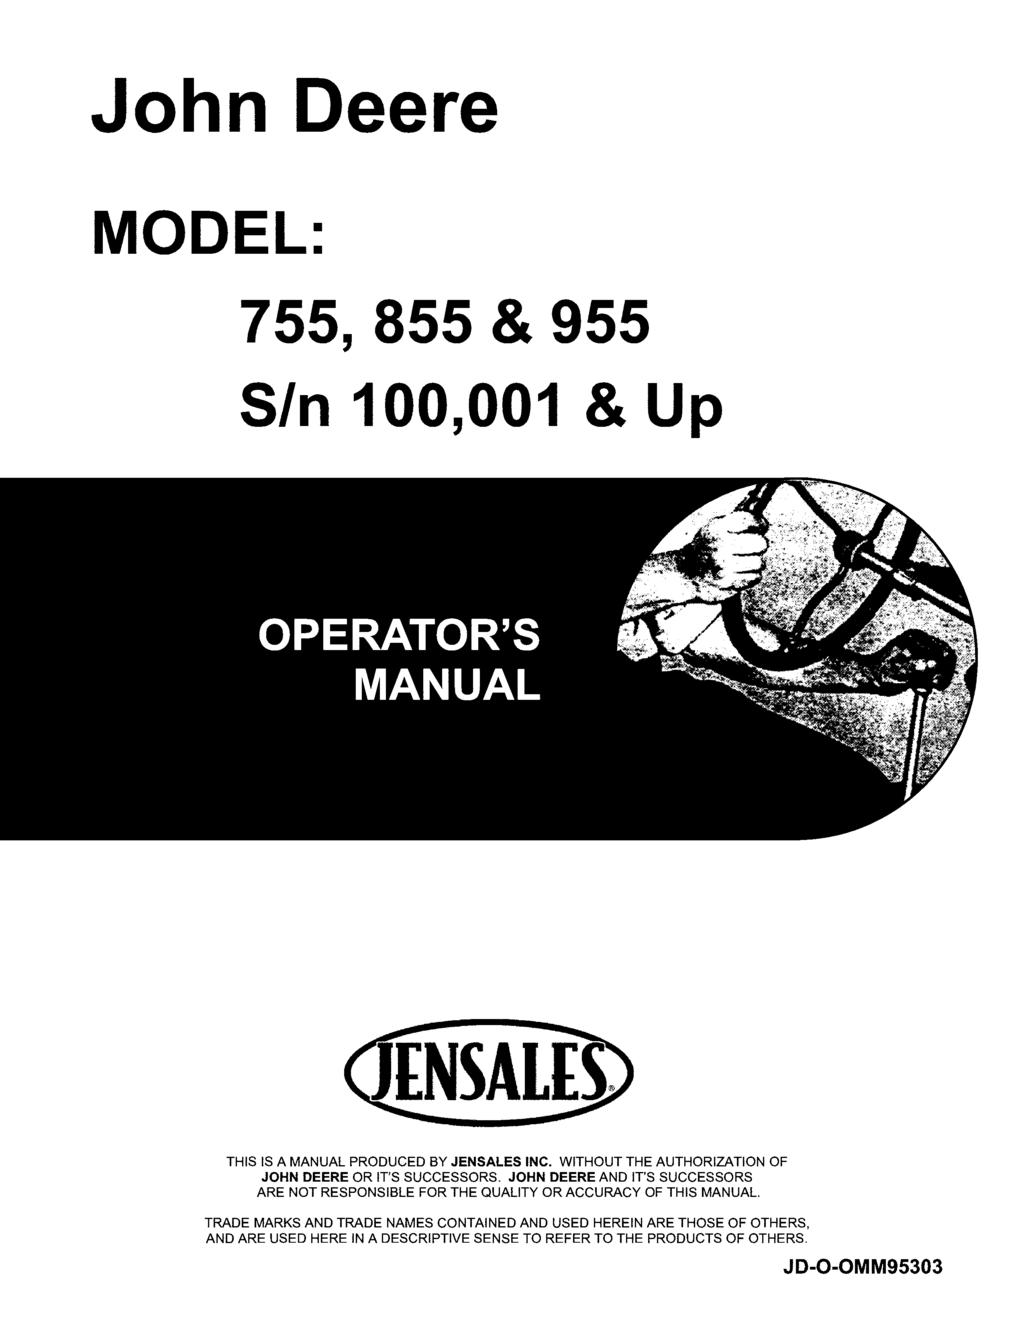 John Deere MODEL: 755, 855 & 955 SIn 100,001 & Up THIS IS A MANUAL PRODUCED BY JENSALES INC. WITHOUT THE AUTHORIZATION OF JOHN DEERE OR IT'S SUCCESSORS.